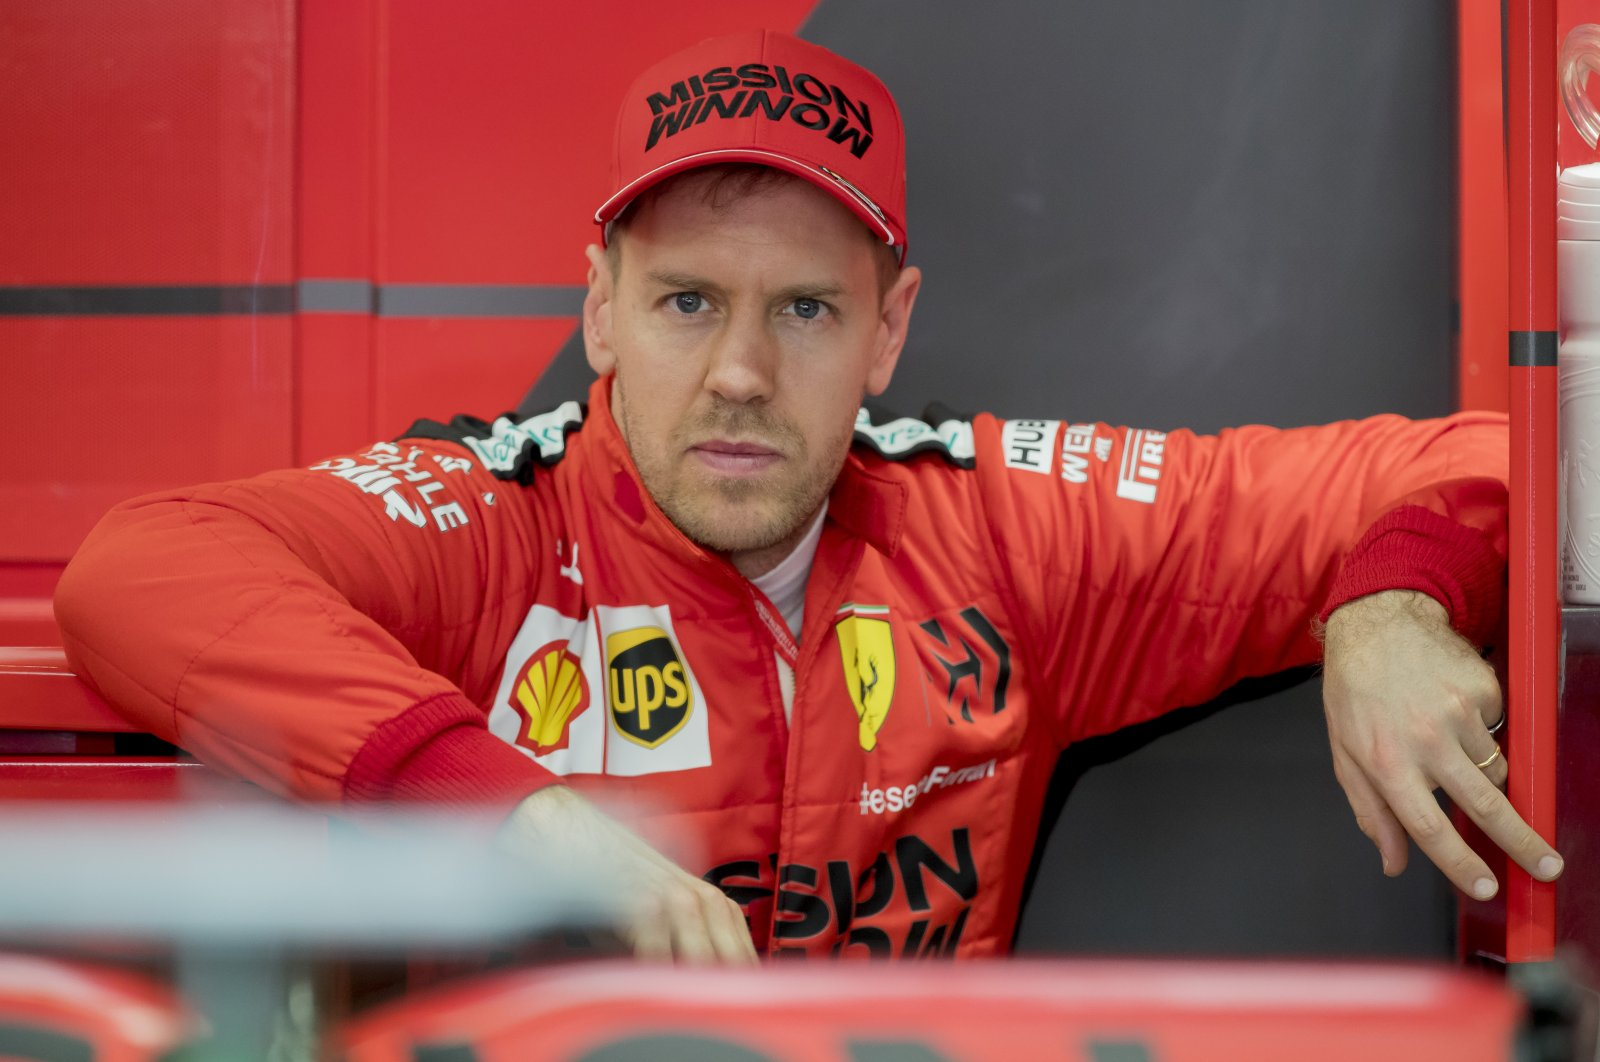 Sebastian Vettel stands at his box during the Formula One preseason testing session at the Barcelona Catalunya racetrack in Montmelo, outside Barcelona, Spain, Feb. 21, 2020. (AP Photo)